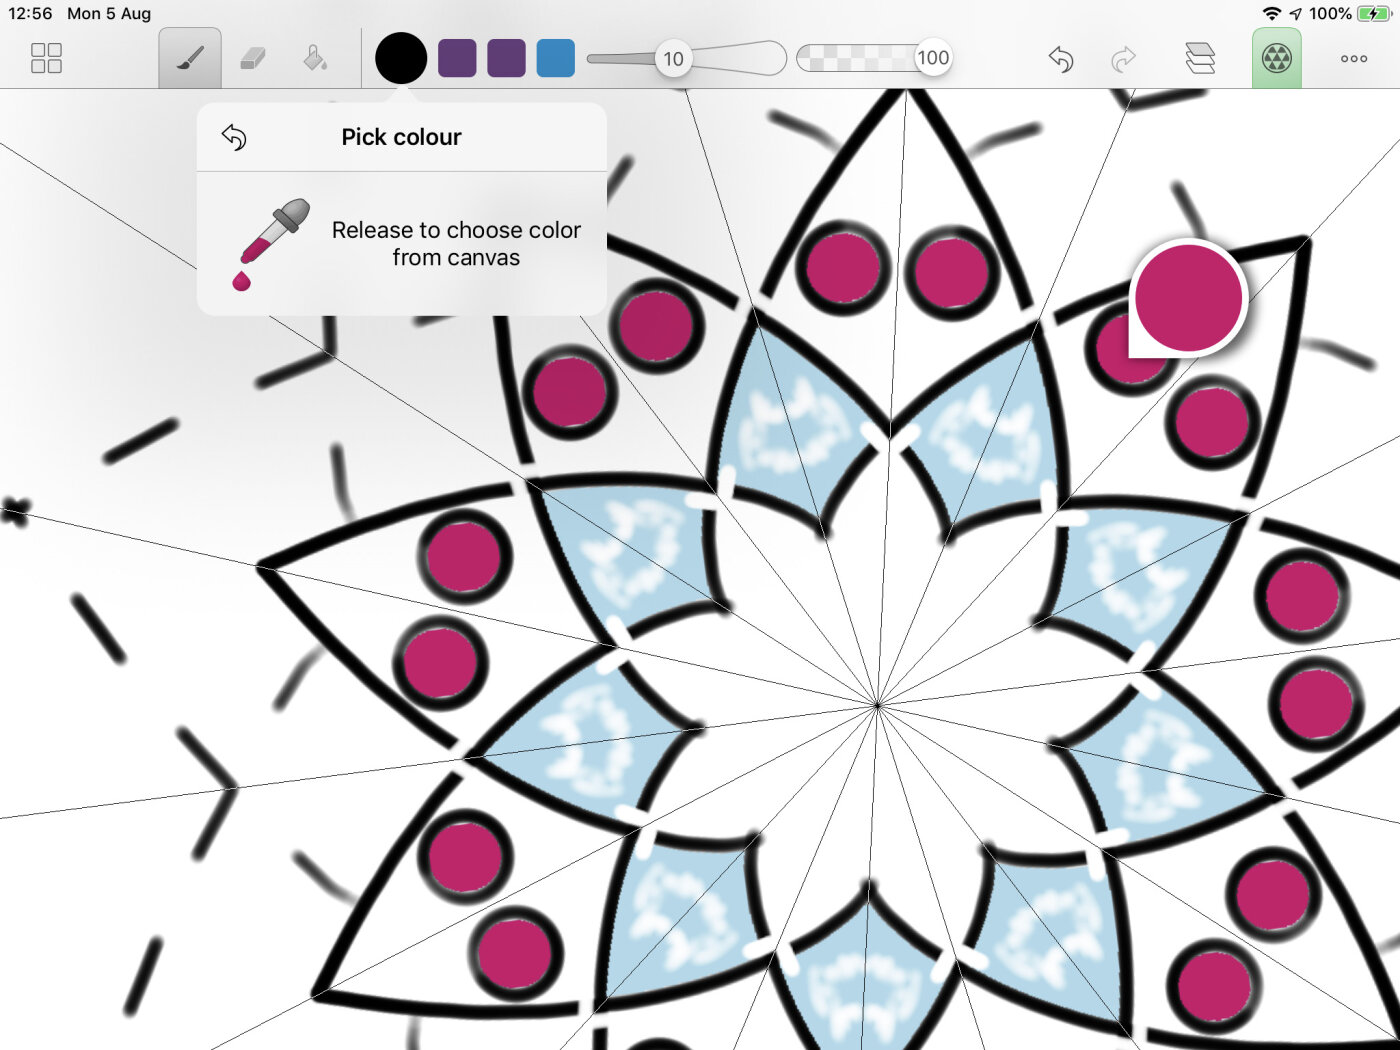 Pick up colour tool. Drag a user-definable colour, right to the canvas.